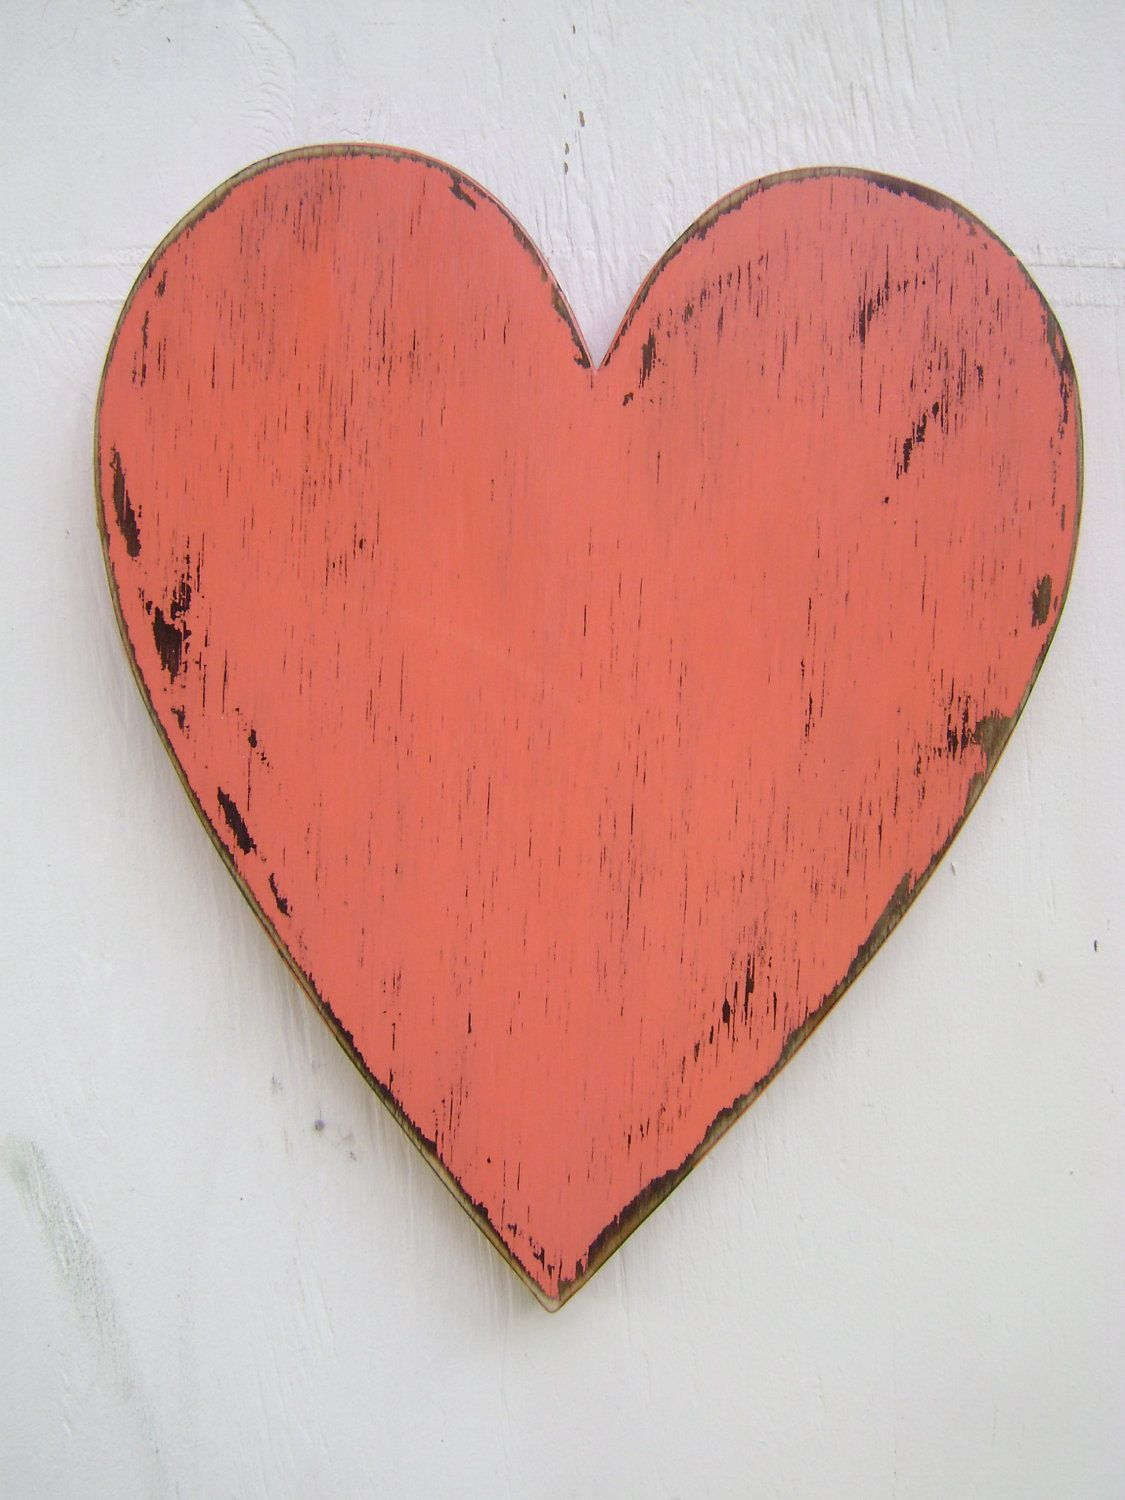 Shabby Chic Rustic Wooden Heart Painted Coral Blush And Distressed Wedding Photo Prop Wood Heart Engagement Wood Hearts Wooden Hearts Engagement Photo Props